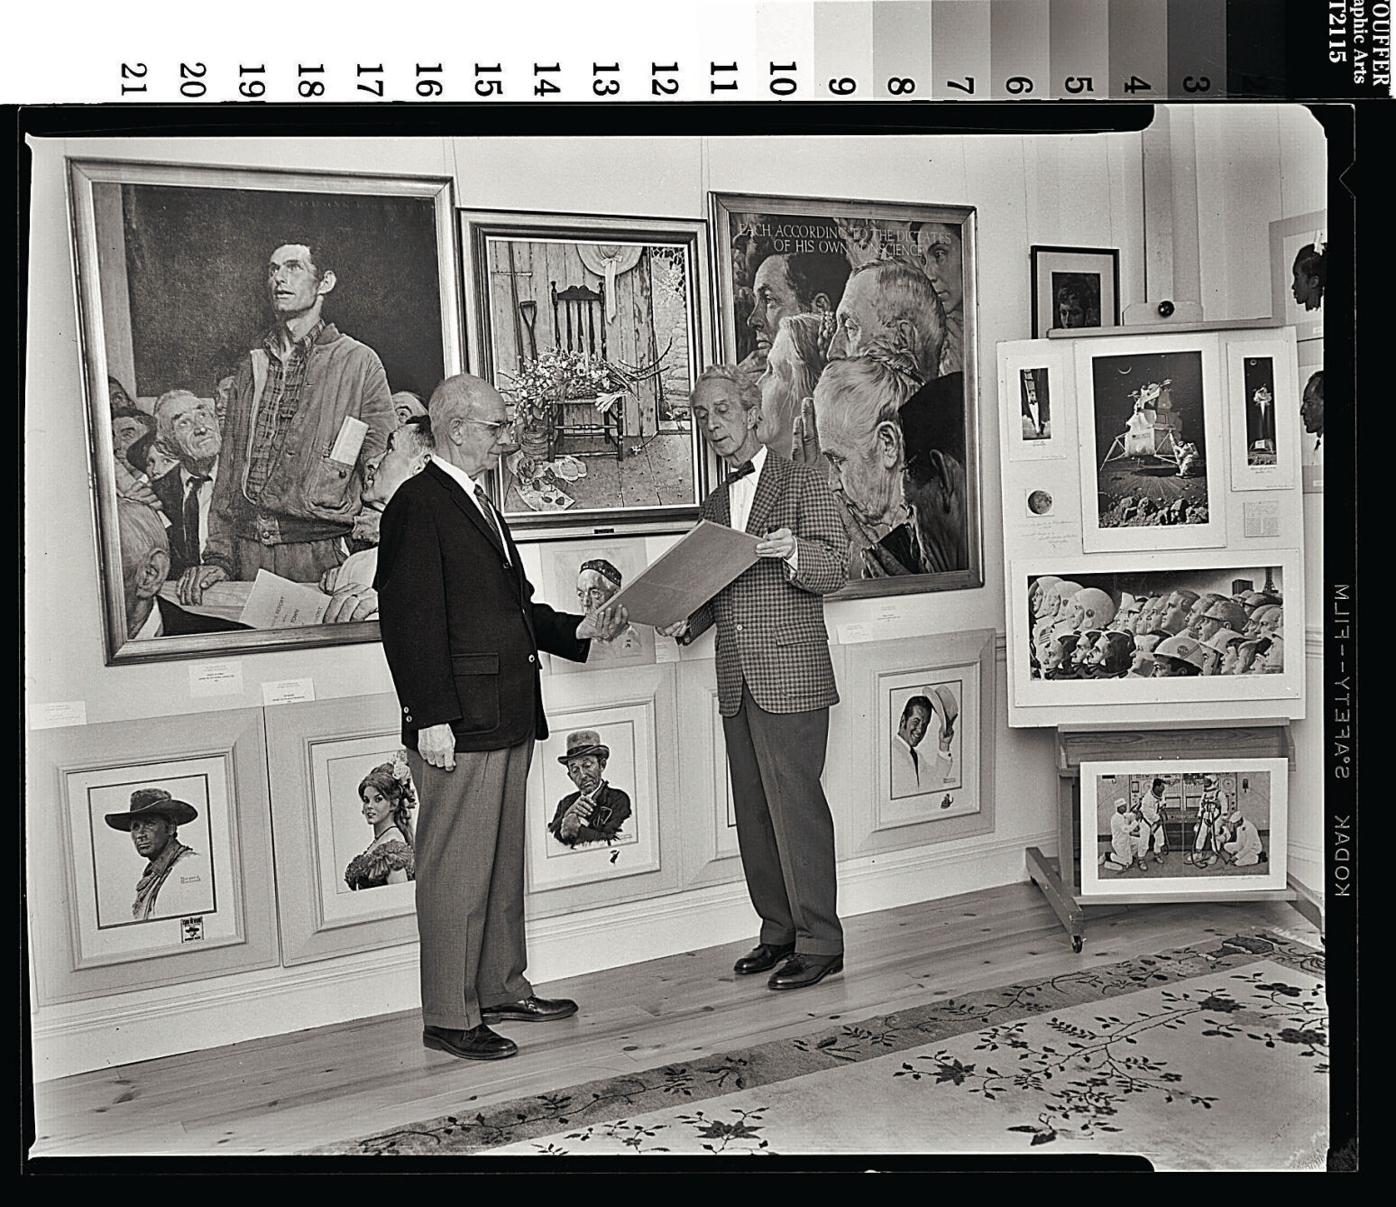 A friendship framed by art: Planned sale of paintings strains bond between Berkshire Museum and Norman Rockwell's world